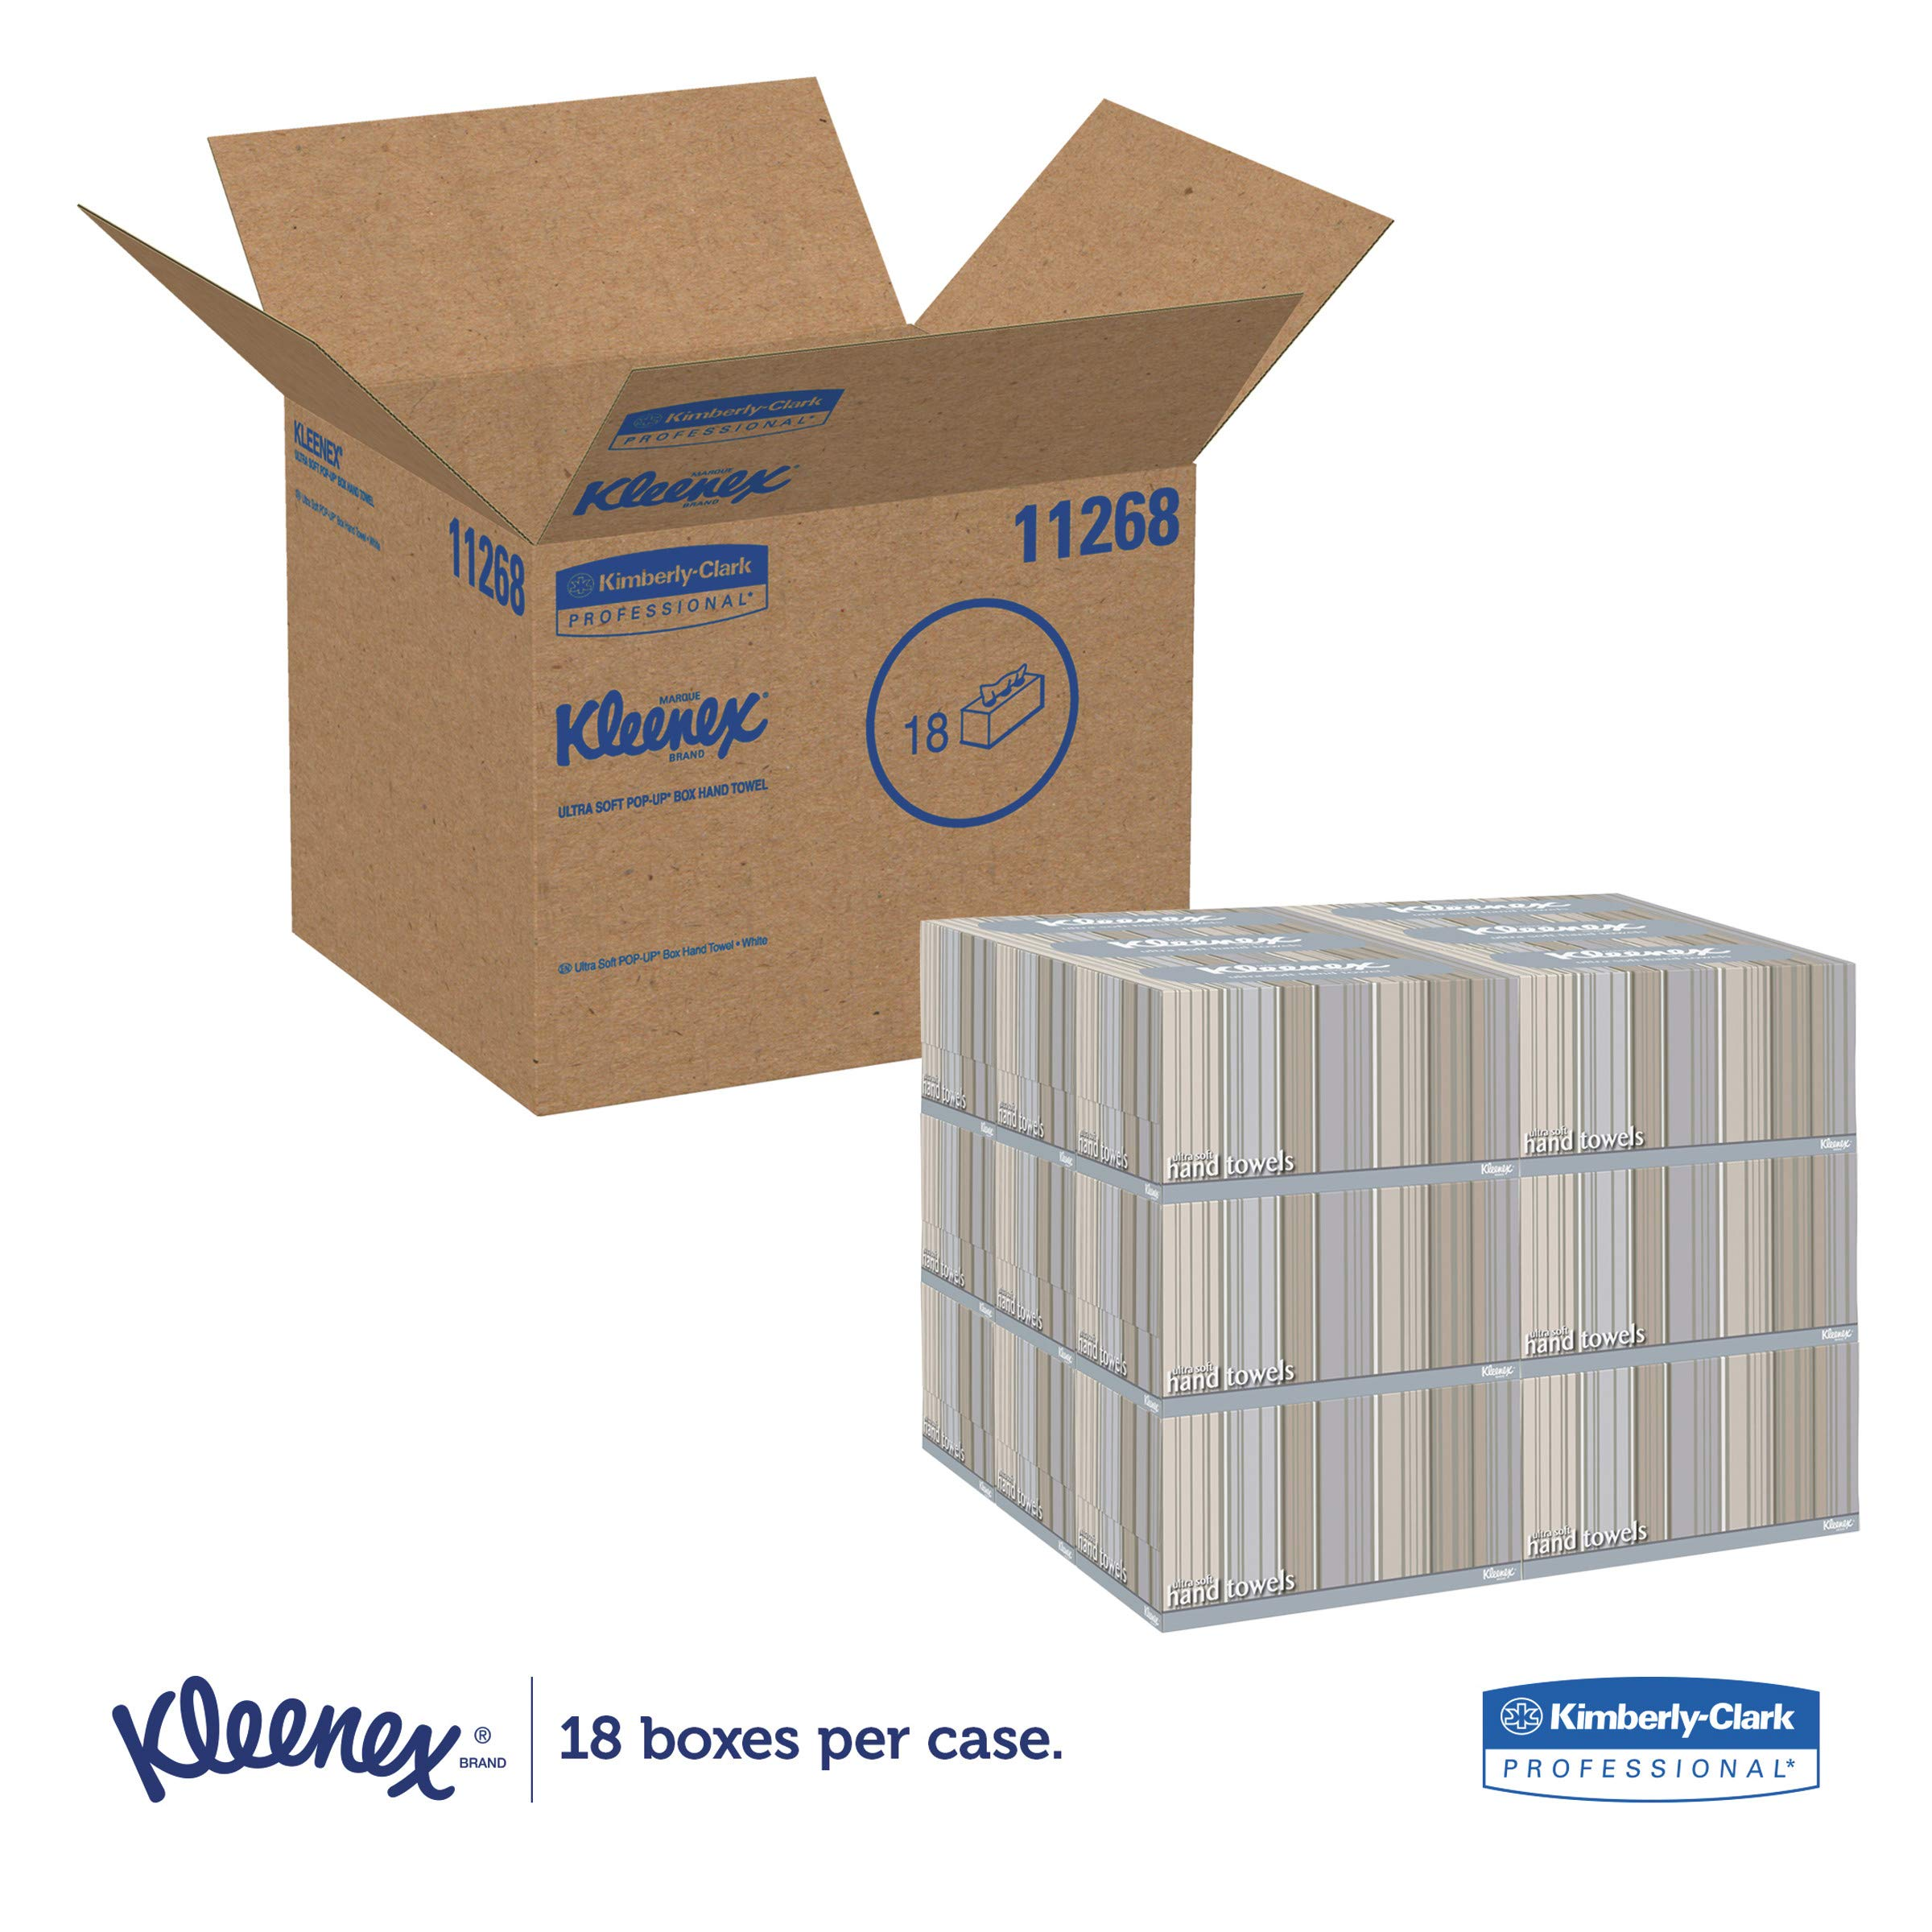 Kleenex 11268CT Ultra Soft Hand Towels, POP-UP Box, White, 70 per Box (Case of 18 Boxes) by Kleenex (Image #2)